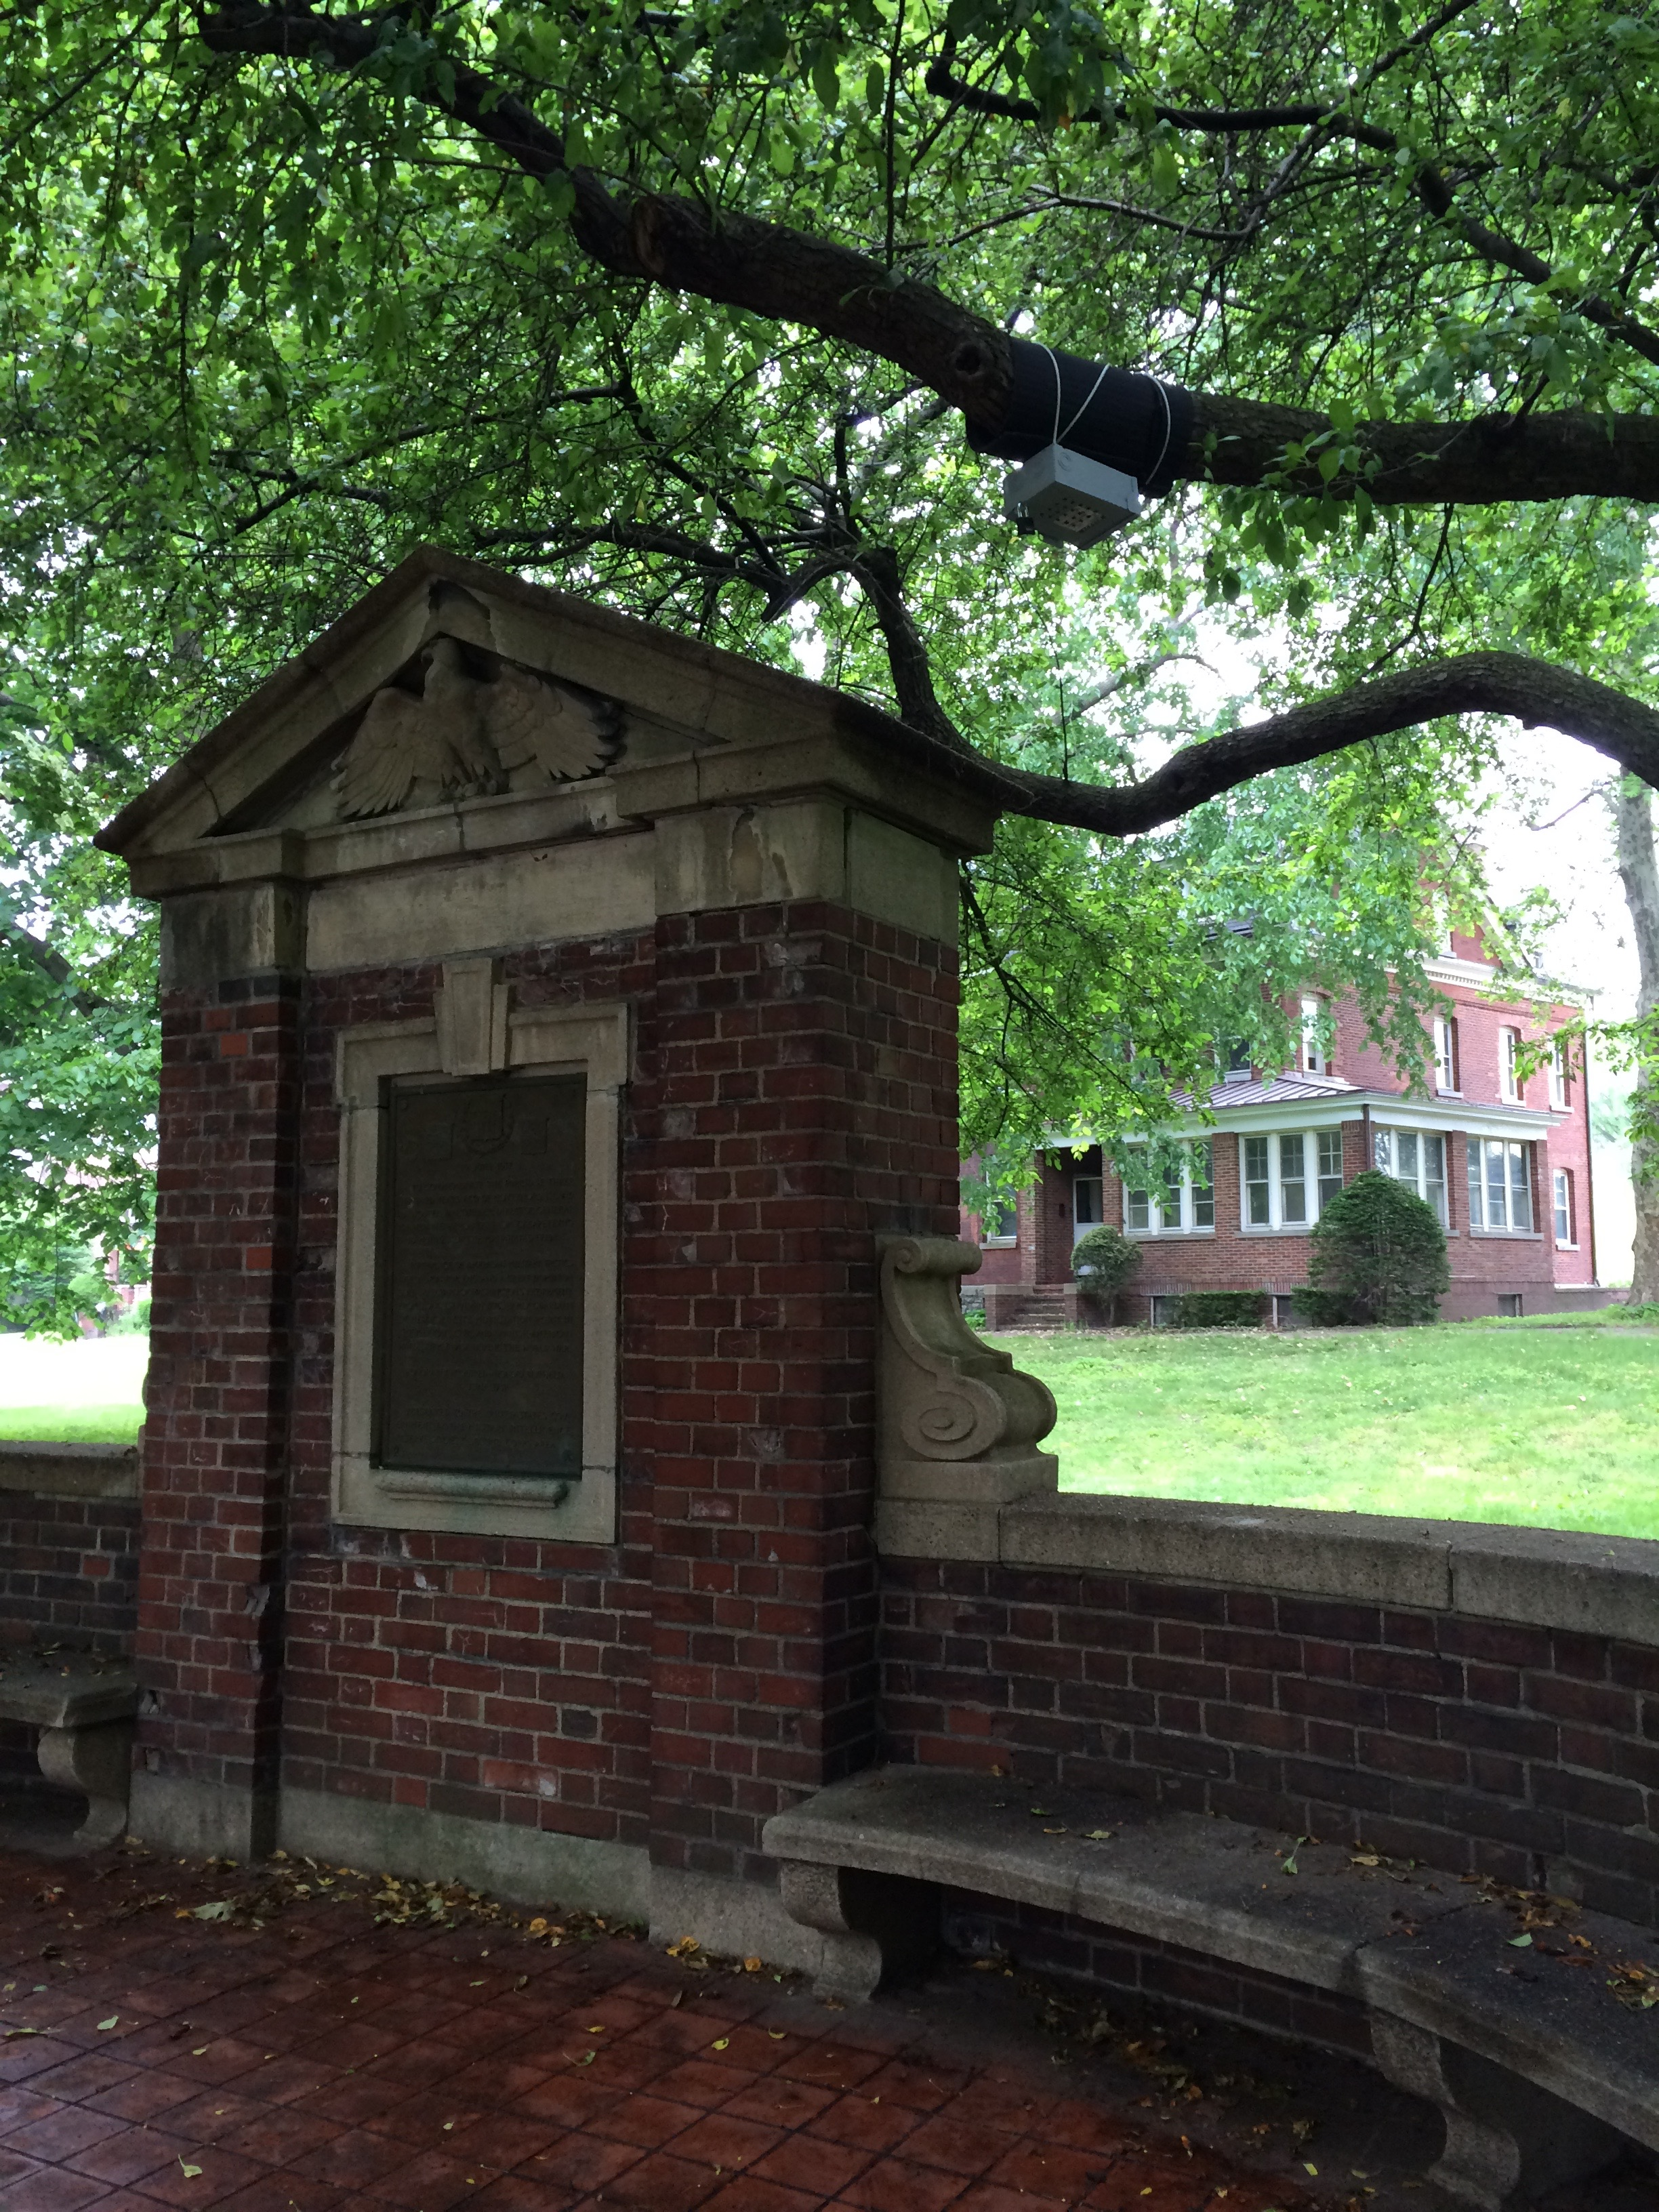 Site V, near a memorial commemorating the purchase of Governors Island, Colonels Row